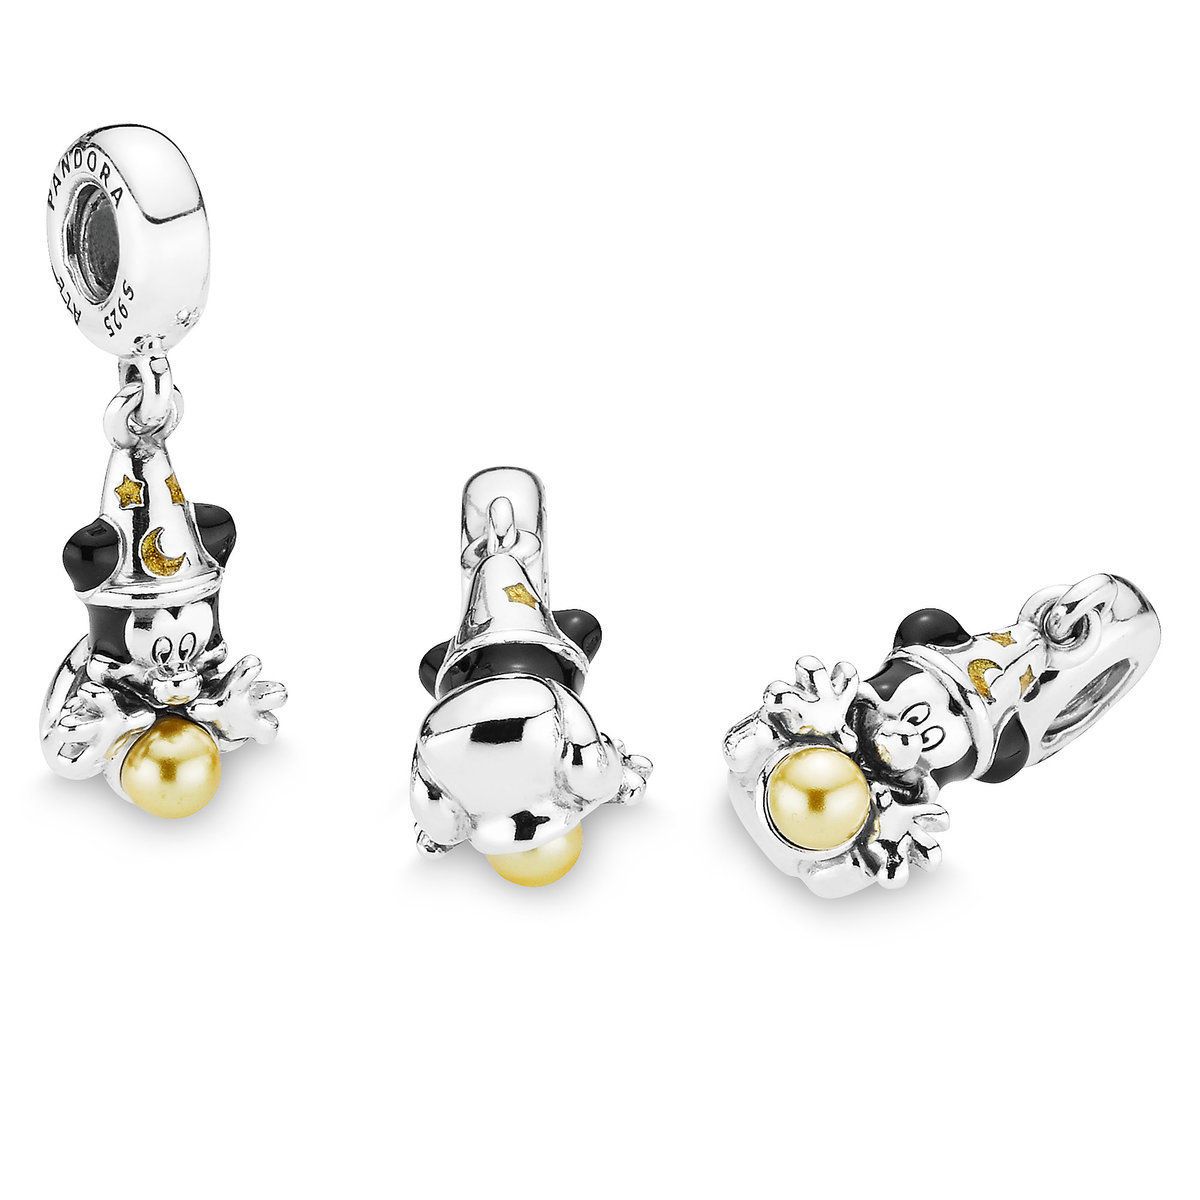 20199f9d969 Product Image of Sorcerer Mickey Mouse Charm by Pandora Jewelry - Fantasia    3